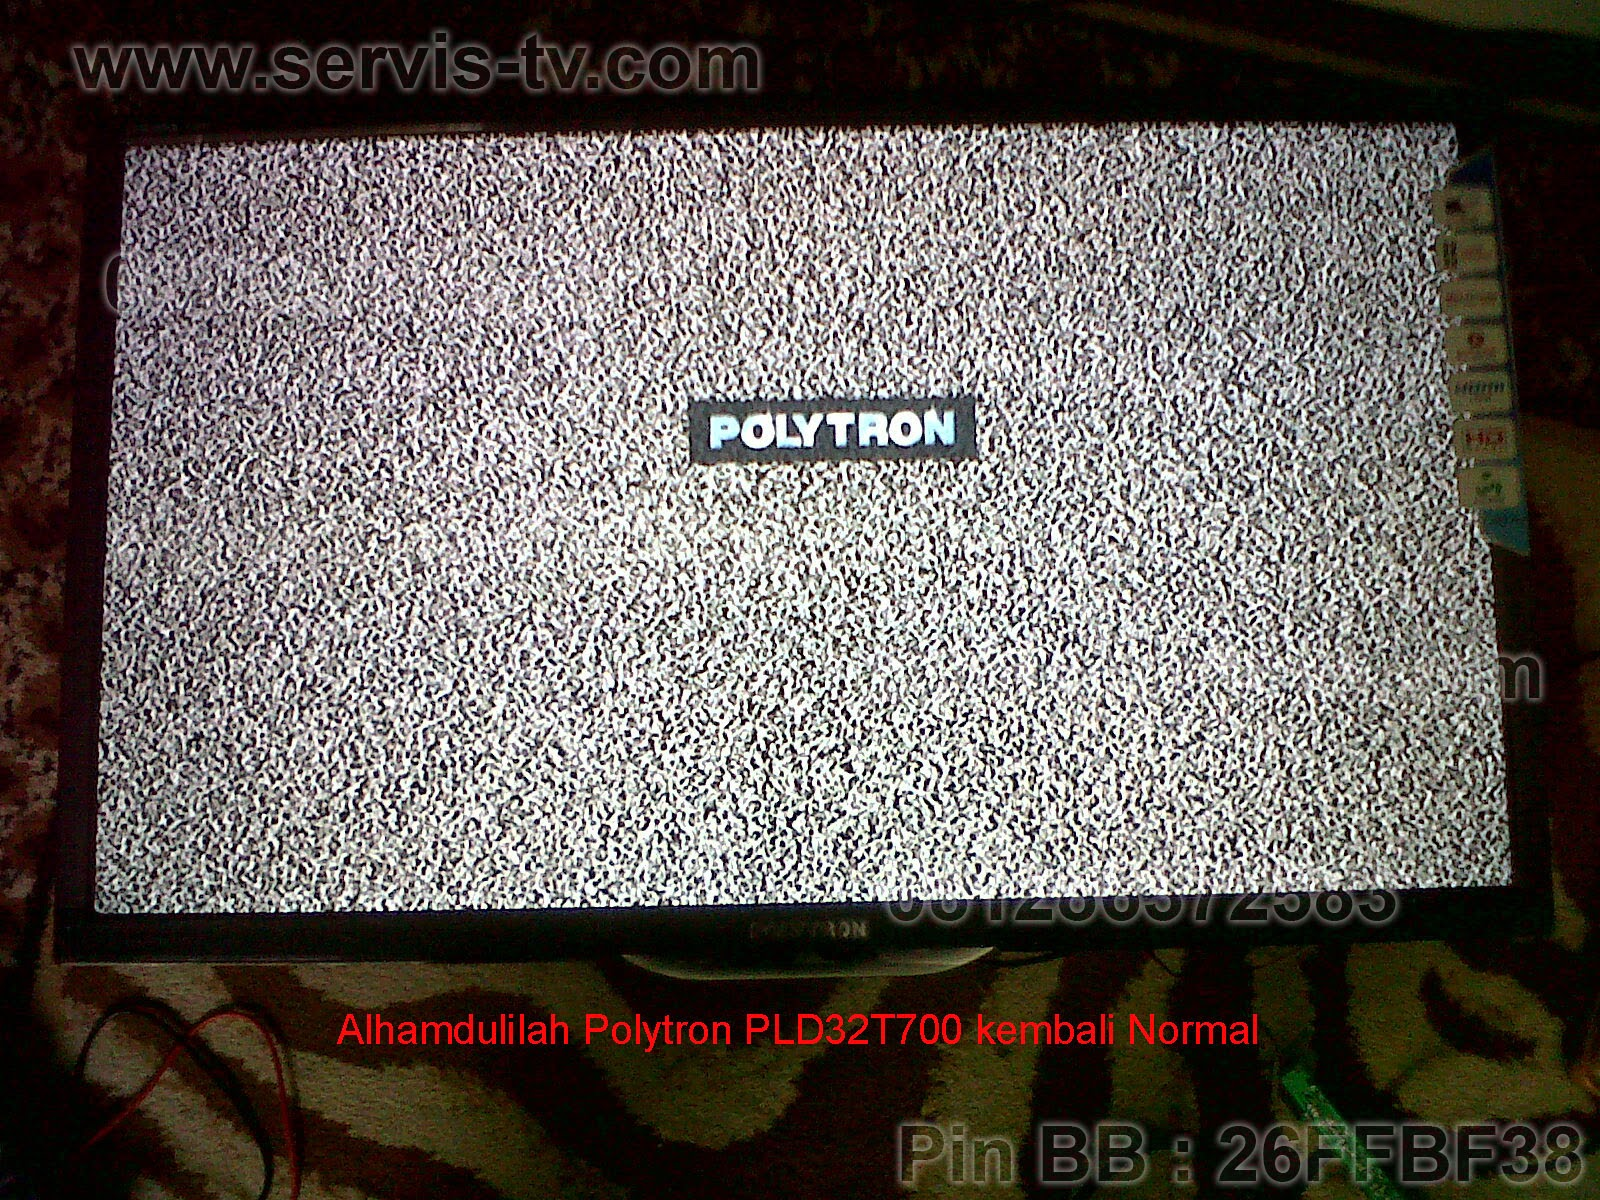 Polytron LED TV Service